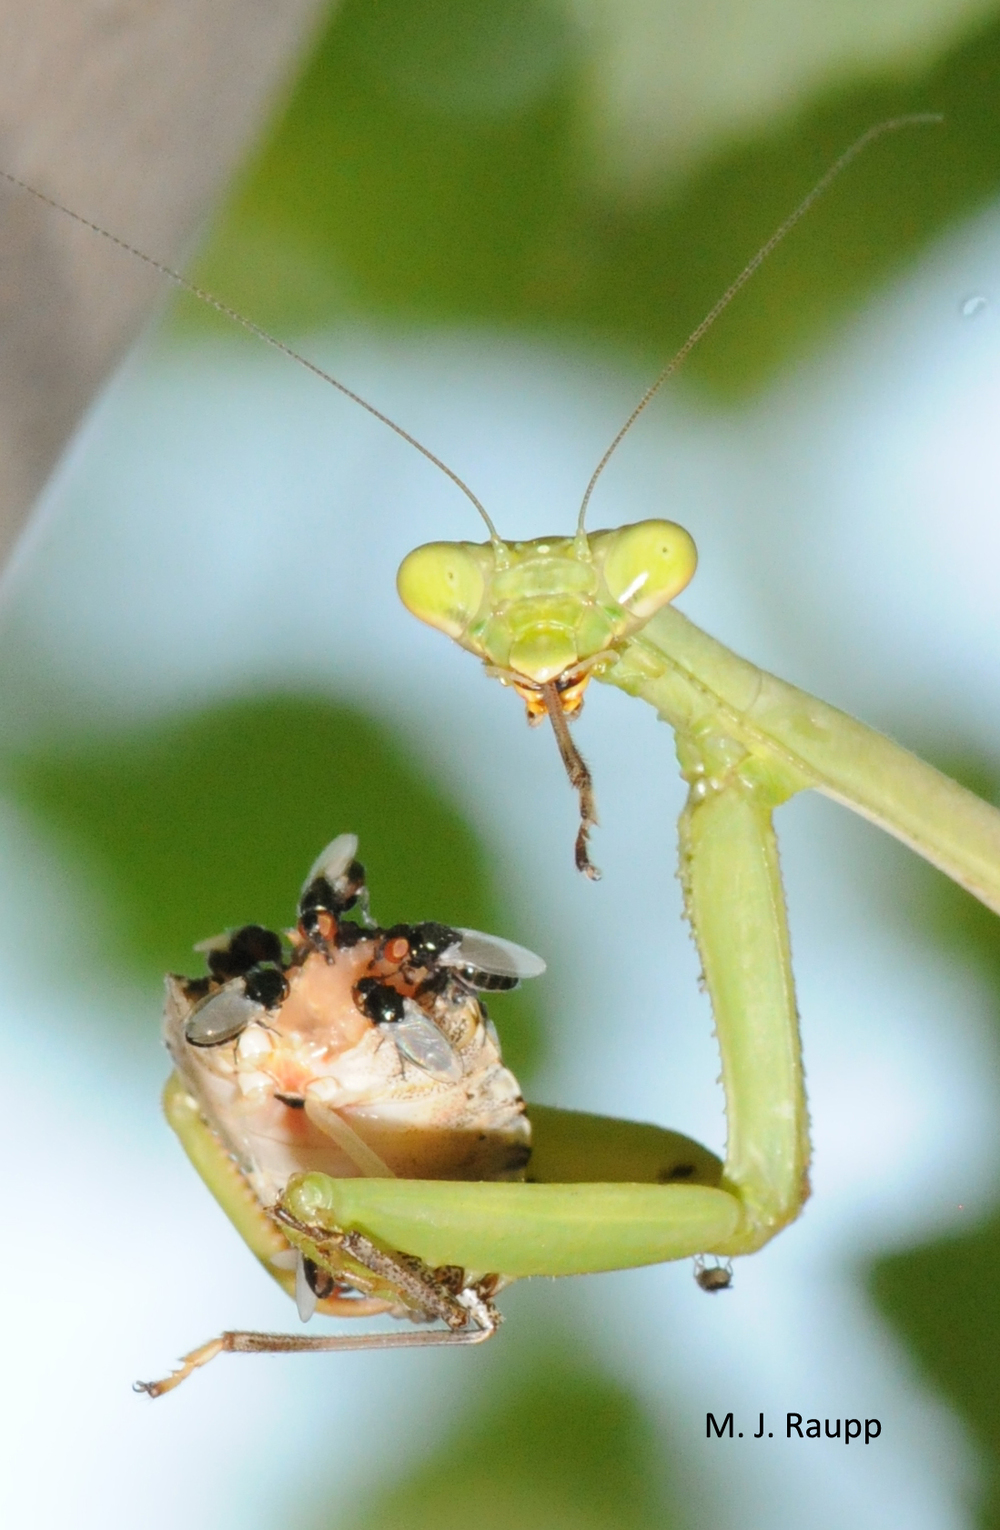 One farmer reported an outbreak of praying mantids in his stink bug-infested field. Let's hope this lass left behind dozens of hungry youngsters with wicked appetites for stink bugs!